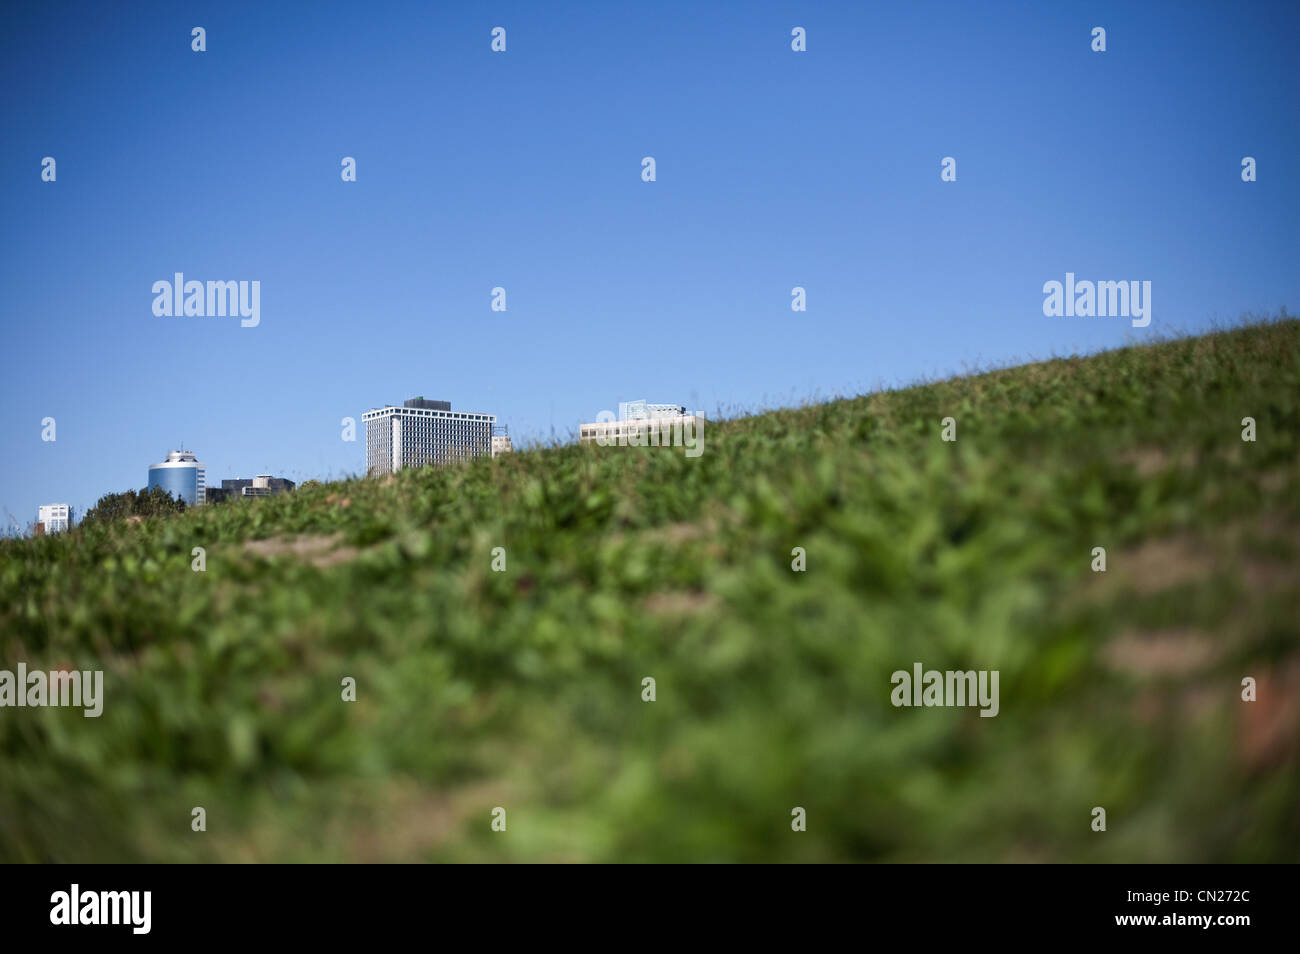 Buildings behind grassy hill - Stock Image